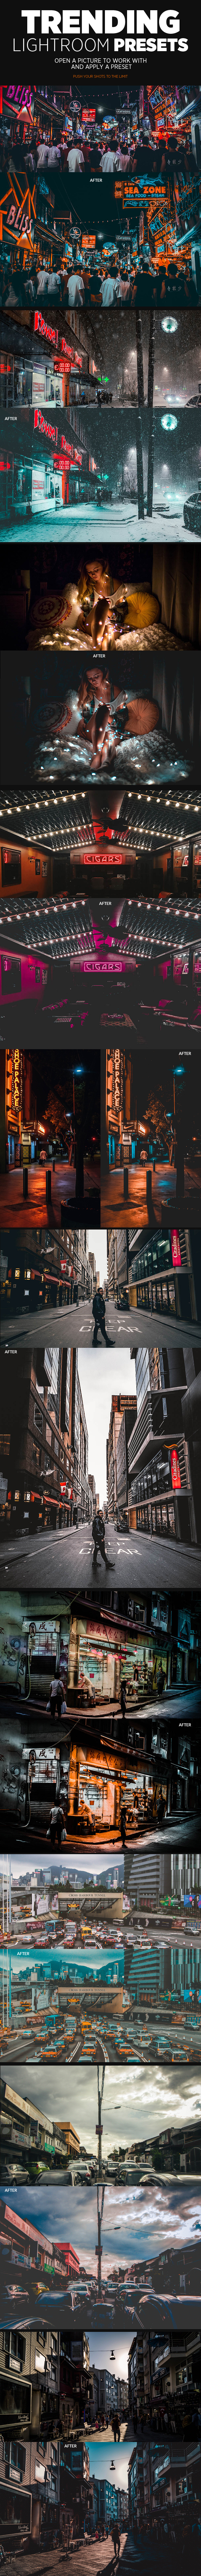 GraphicRiver Trending Lightroom Presets 21135252